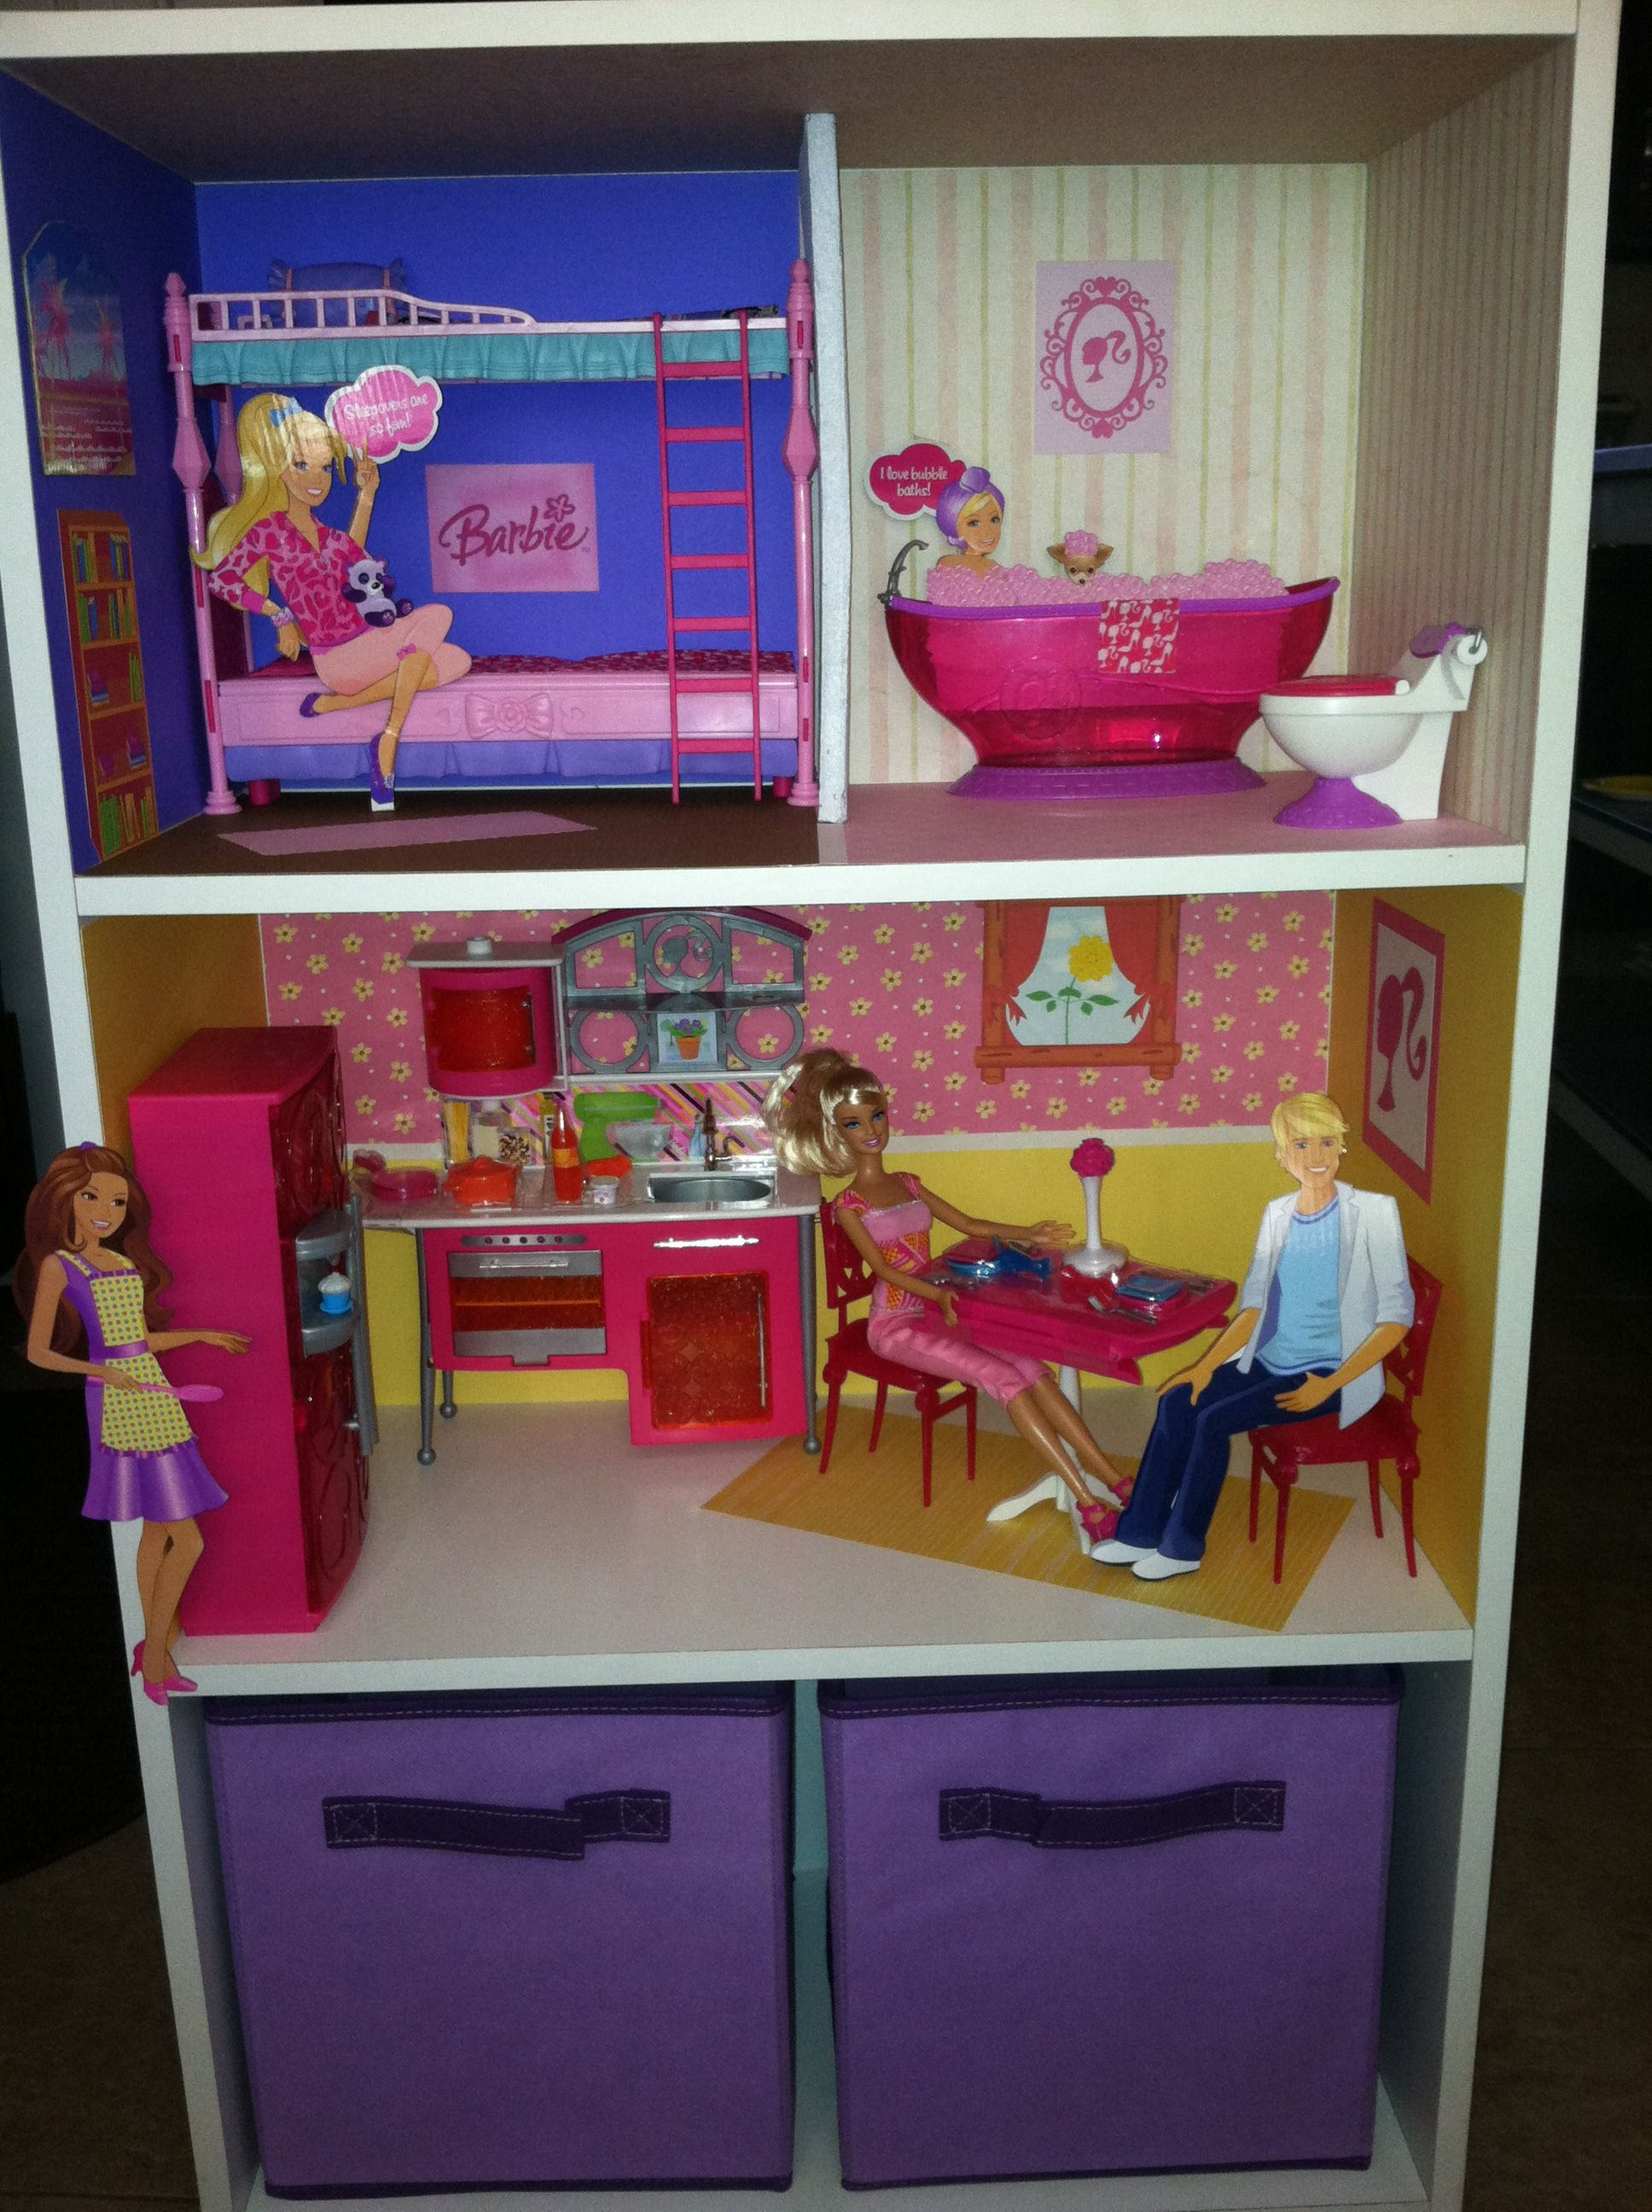 Scrapbook paper dollhouse wallpaper - Homemade Barbie House Out Of 16 Shelves From Target Scrapbook Paper For Wallpaper And Bins